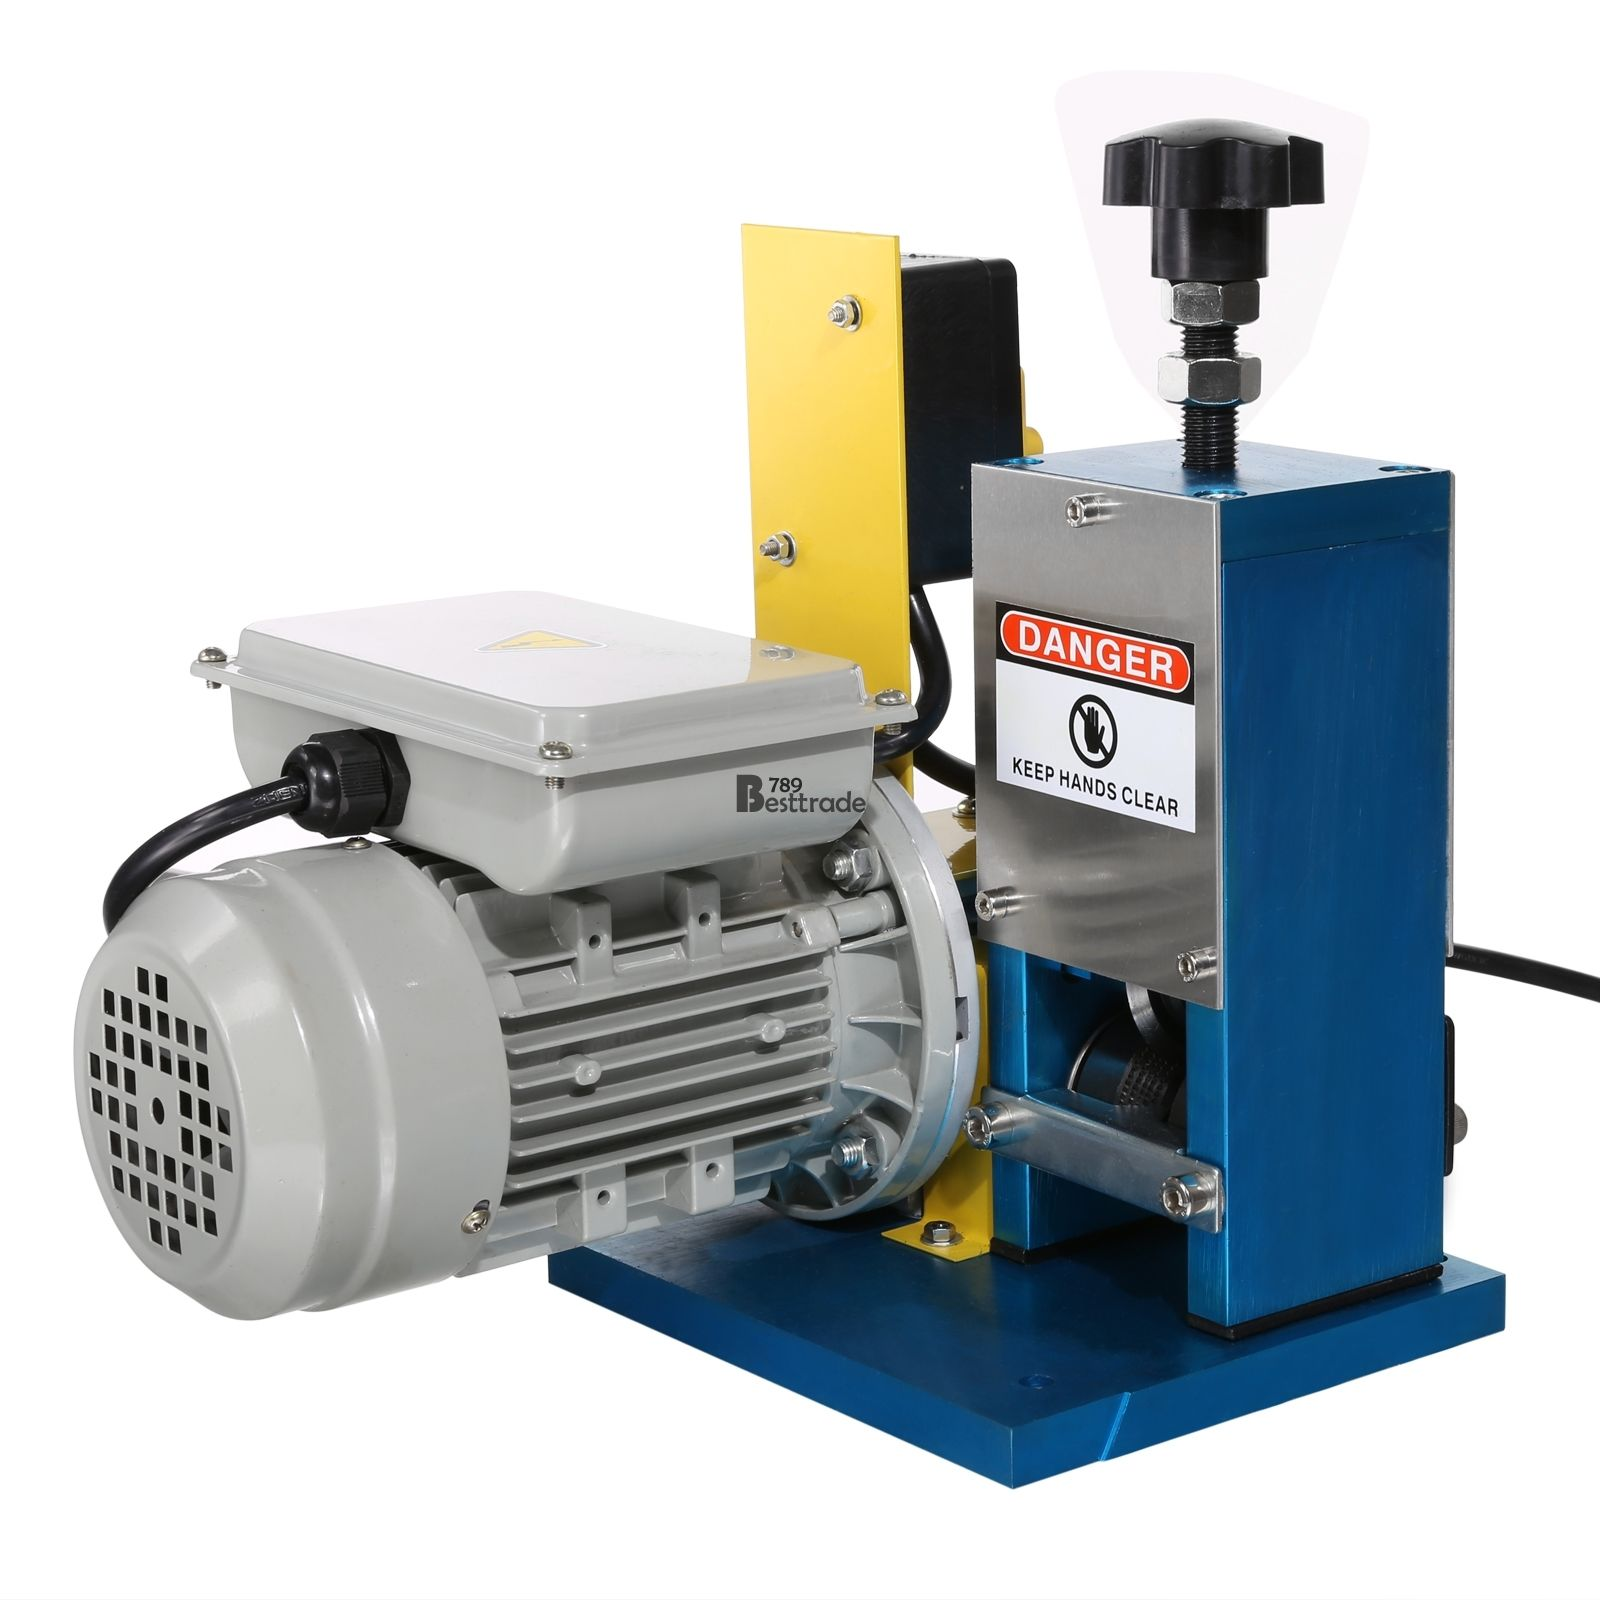 New Cable Amp Wire Stripping Stripper Machines Copper